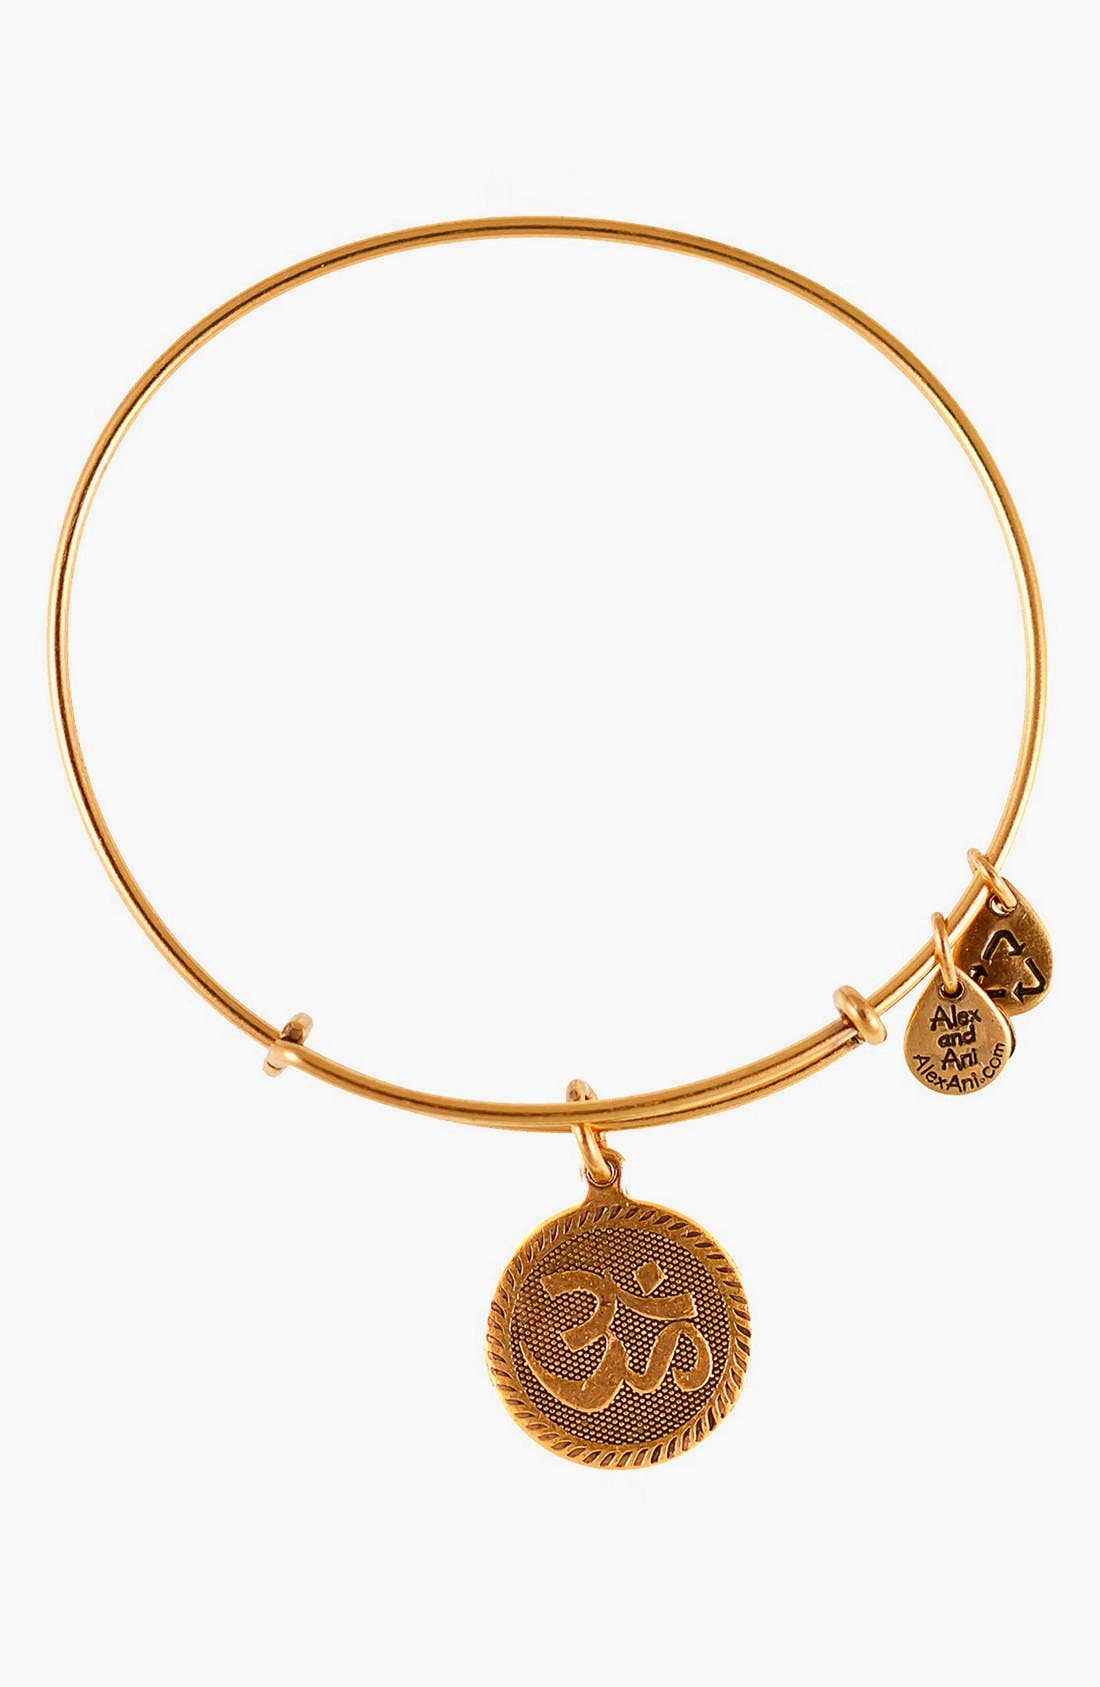 Alternate Image 1 Selected - Alex and Ani 'Om' Wire Bangle